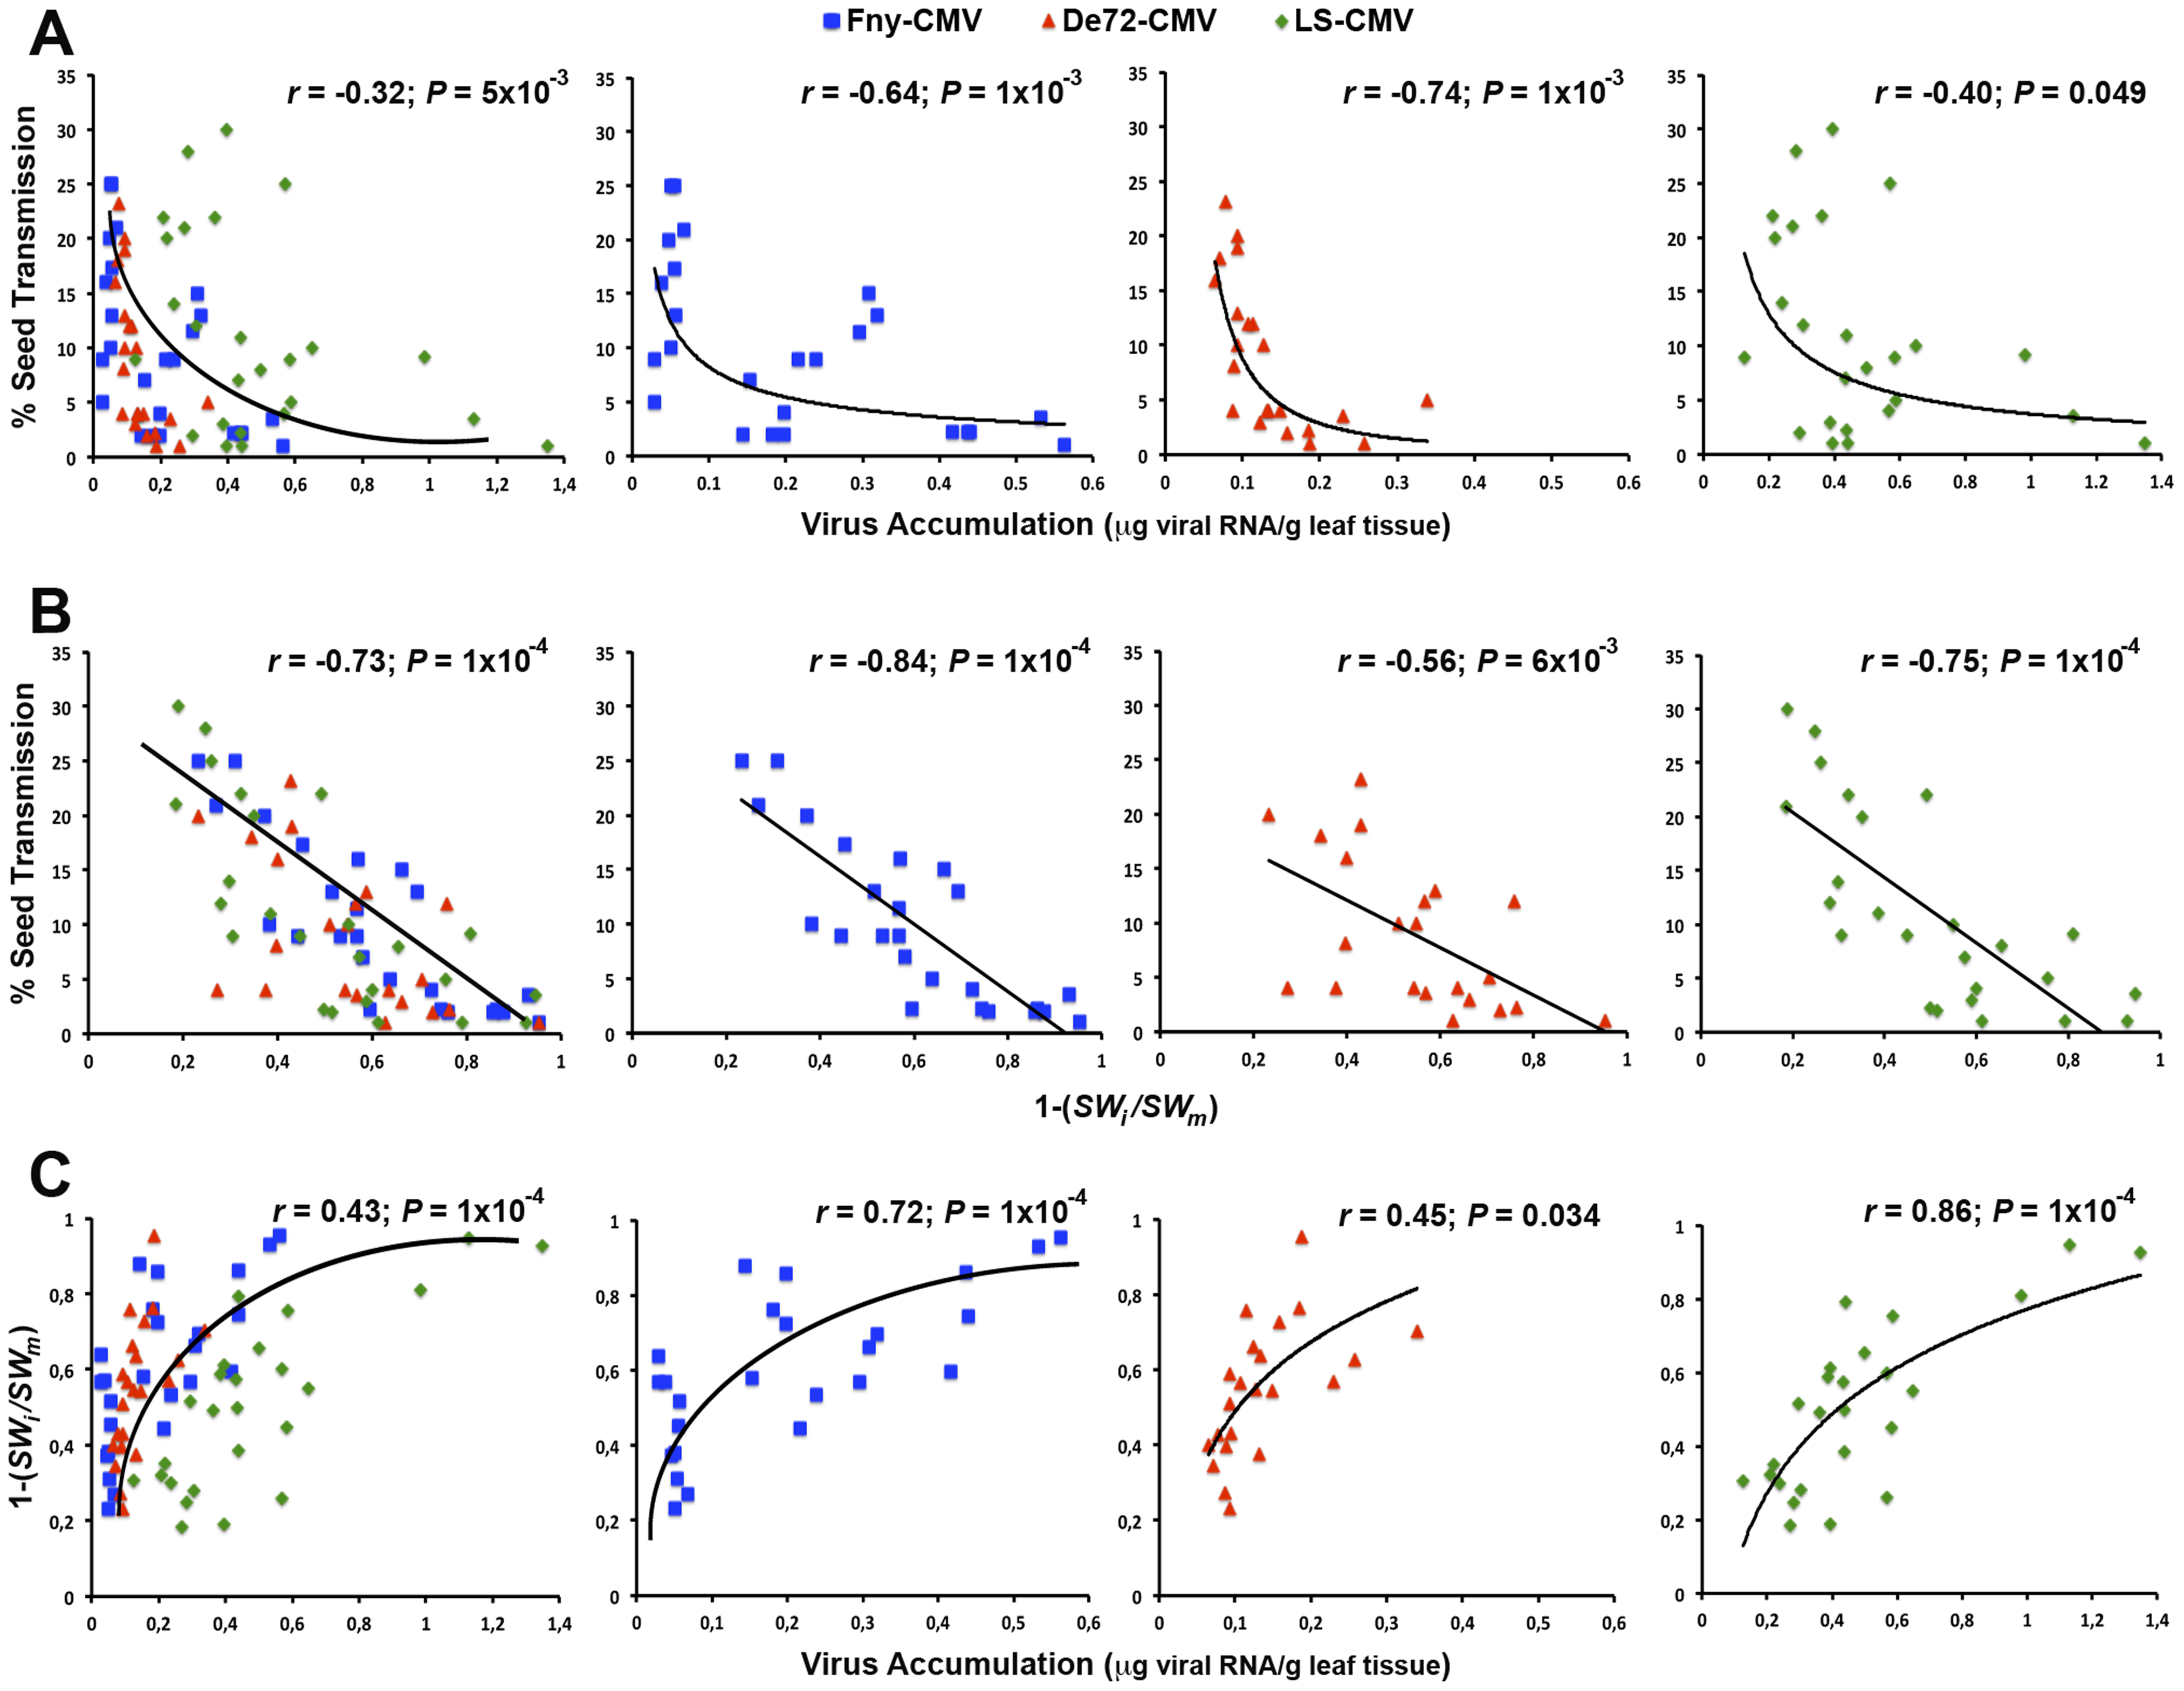 Bivariate analyses between seed transmission, virus accumulation and virulence across passages of vertical transmission.